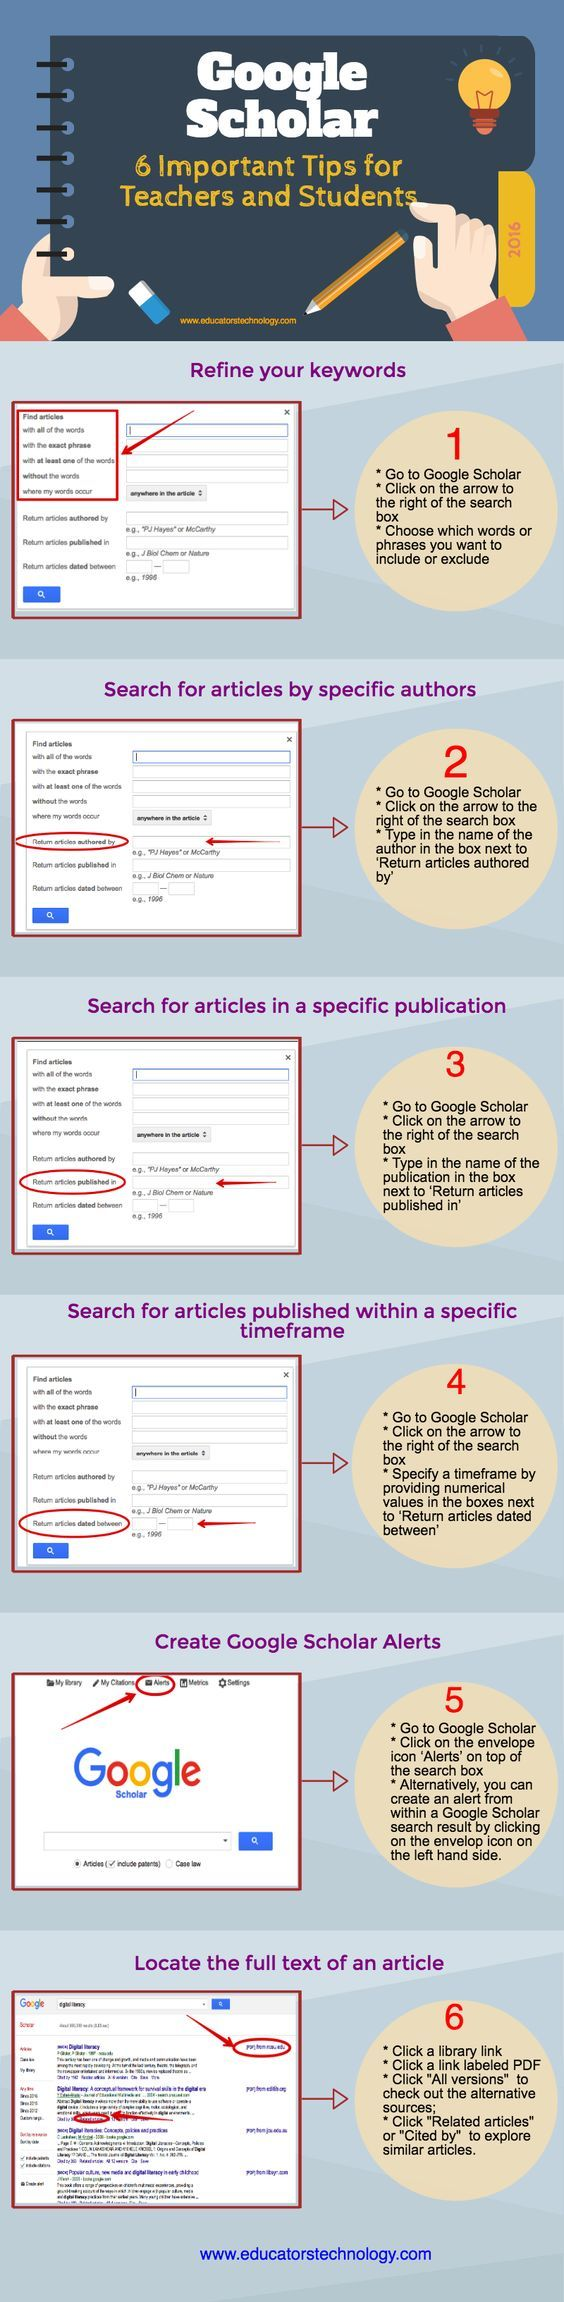 6 Important Google Scholar Tips For Teachers And Students (poster) ~  Educational Technology And